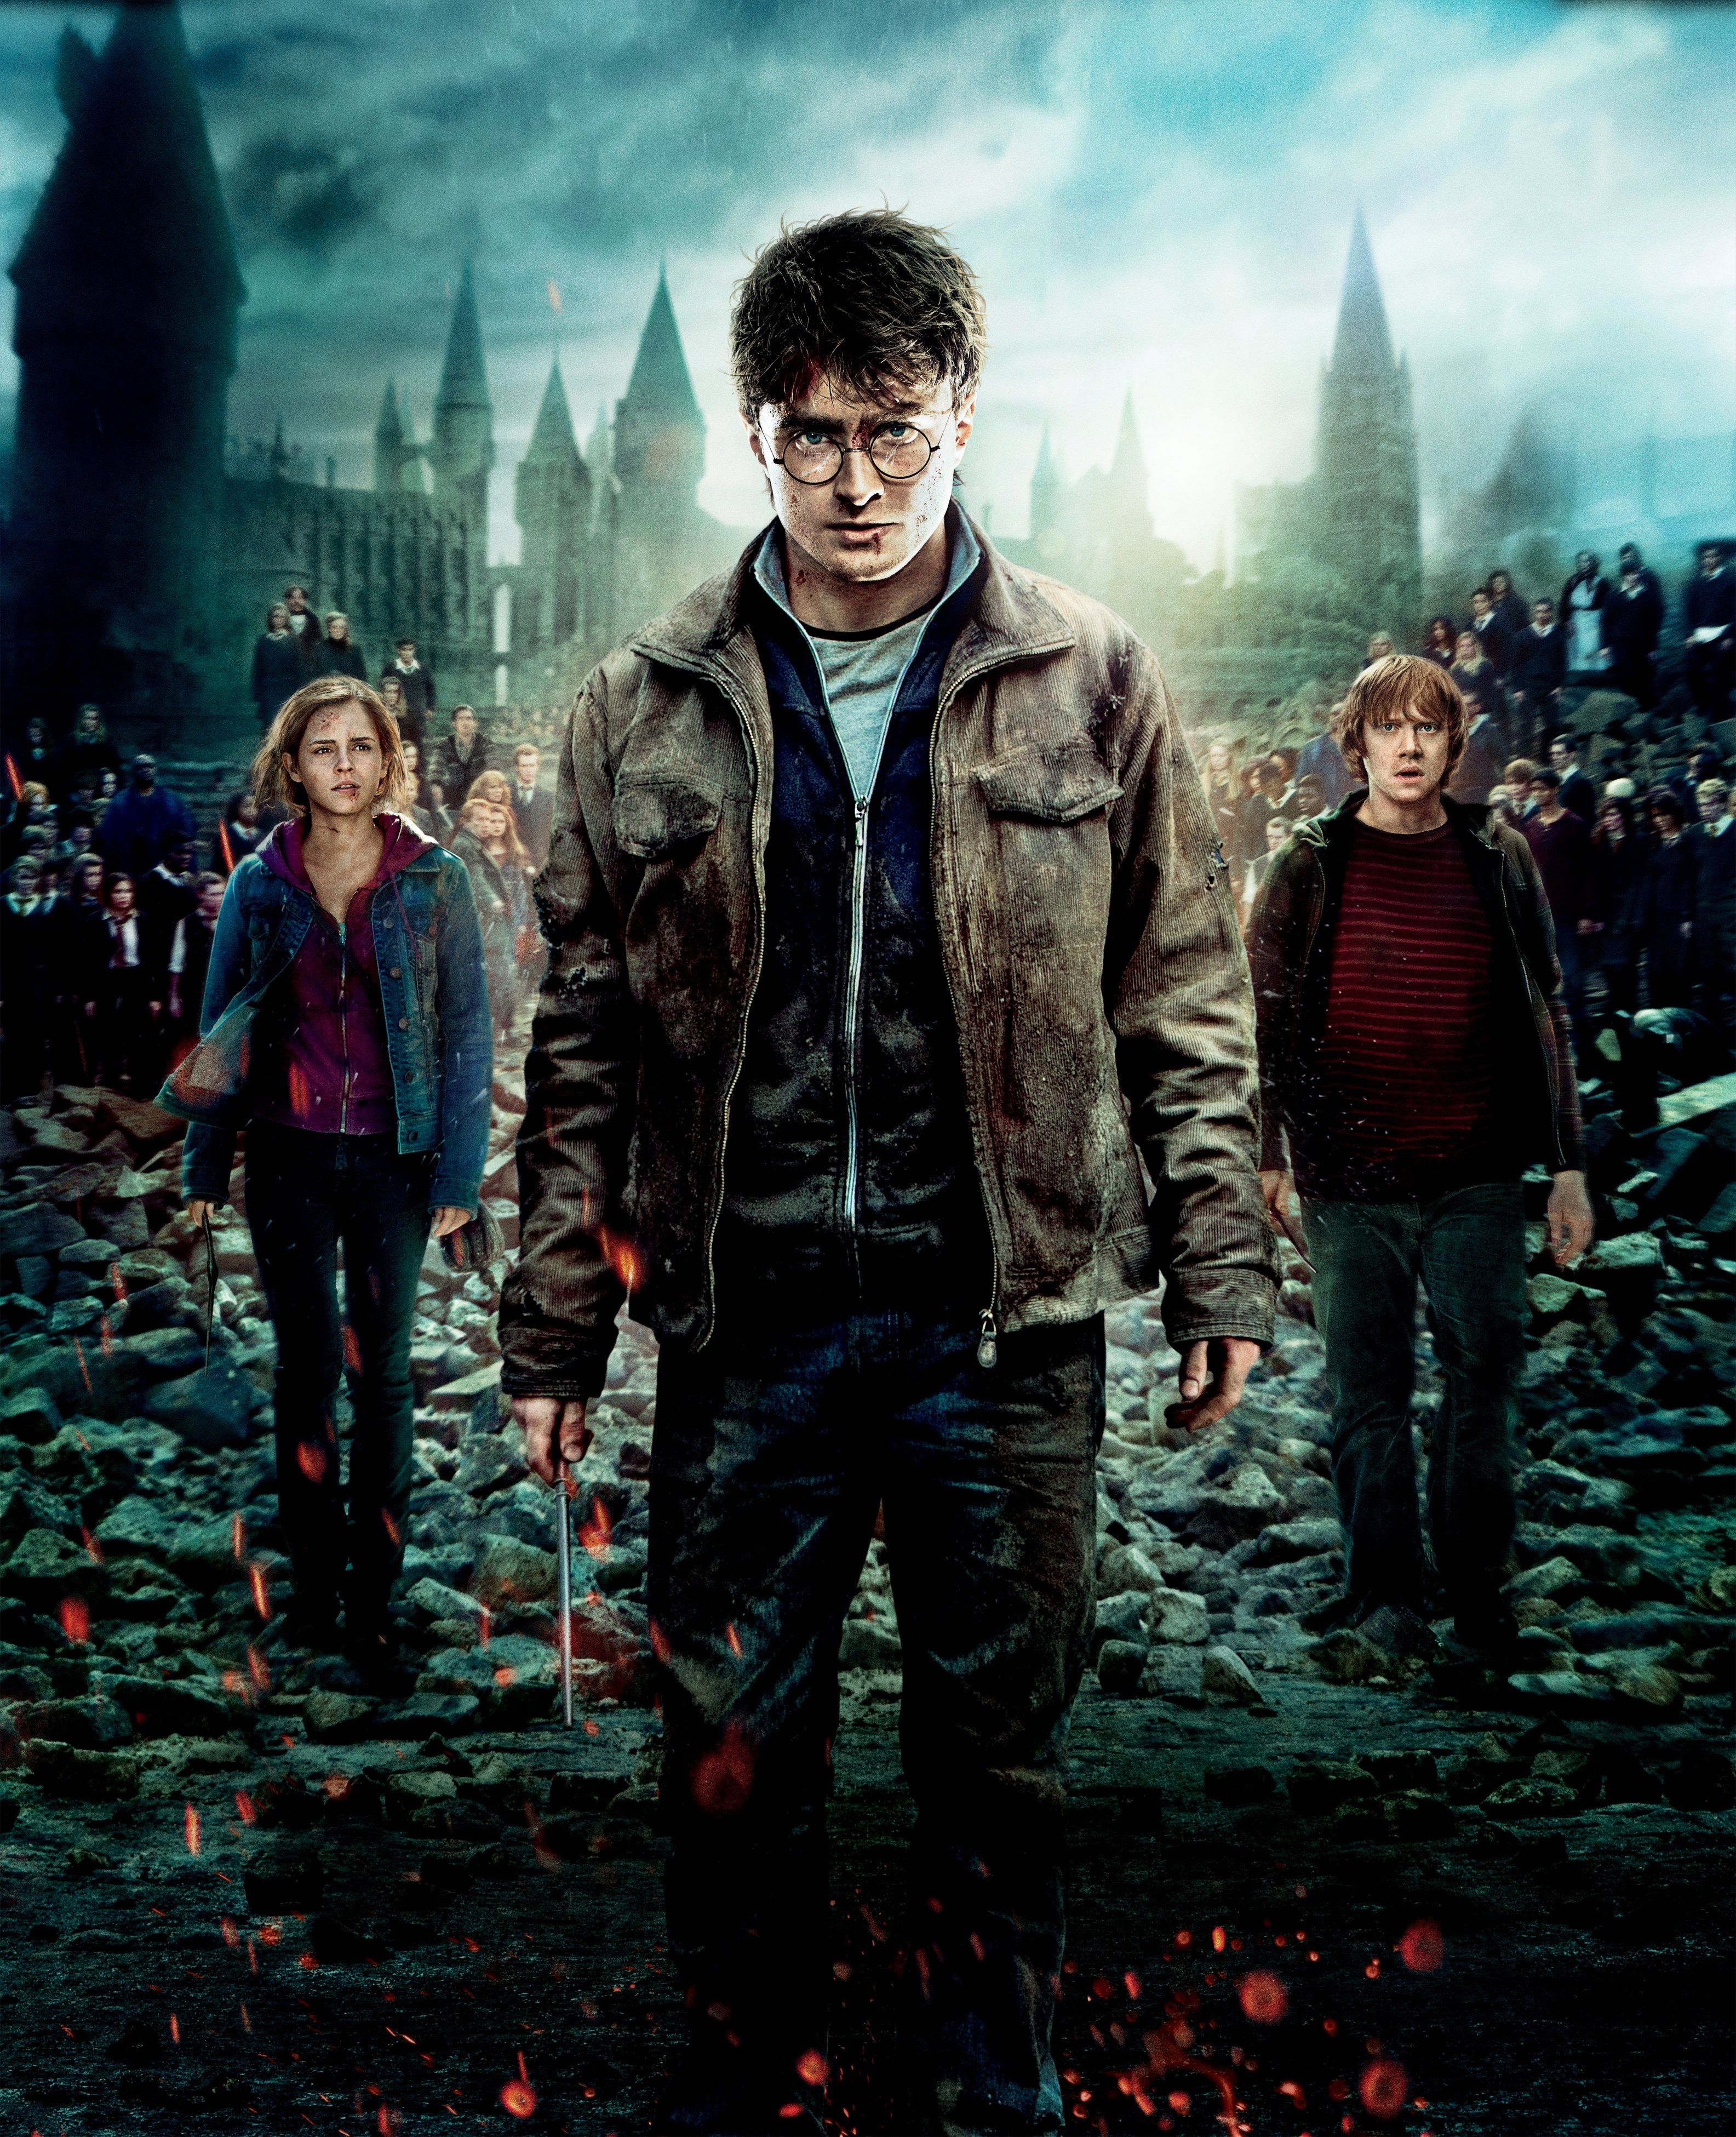 Harry Potter 7 Part 2 First Harry Potter Harry Potter Background Harry Potter Movies